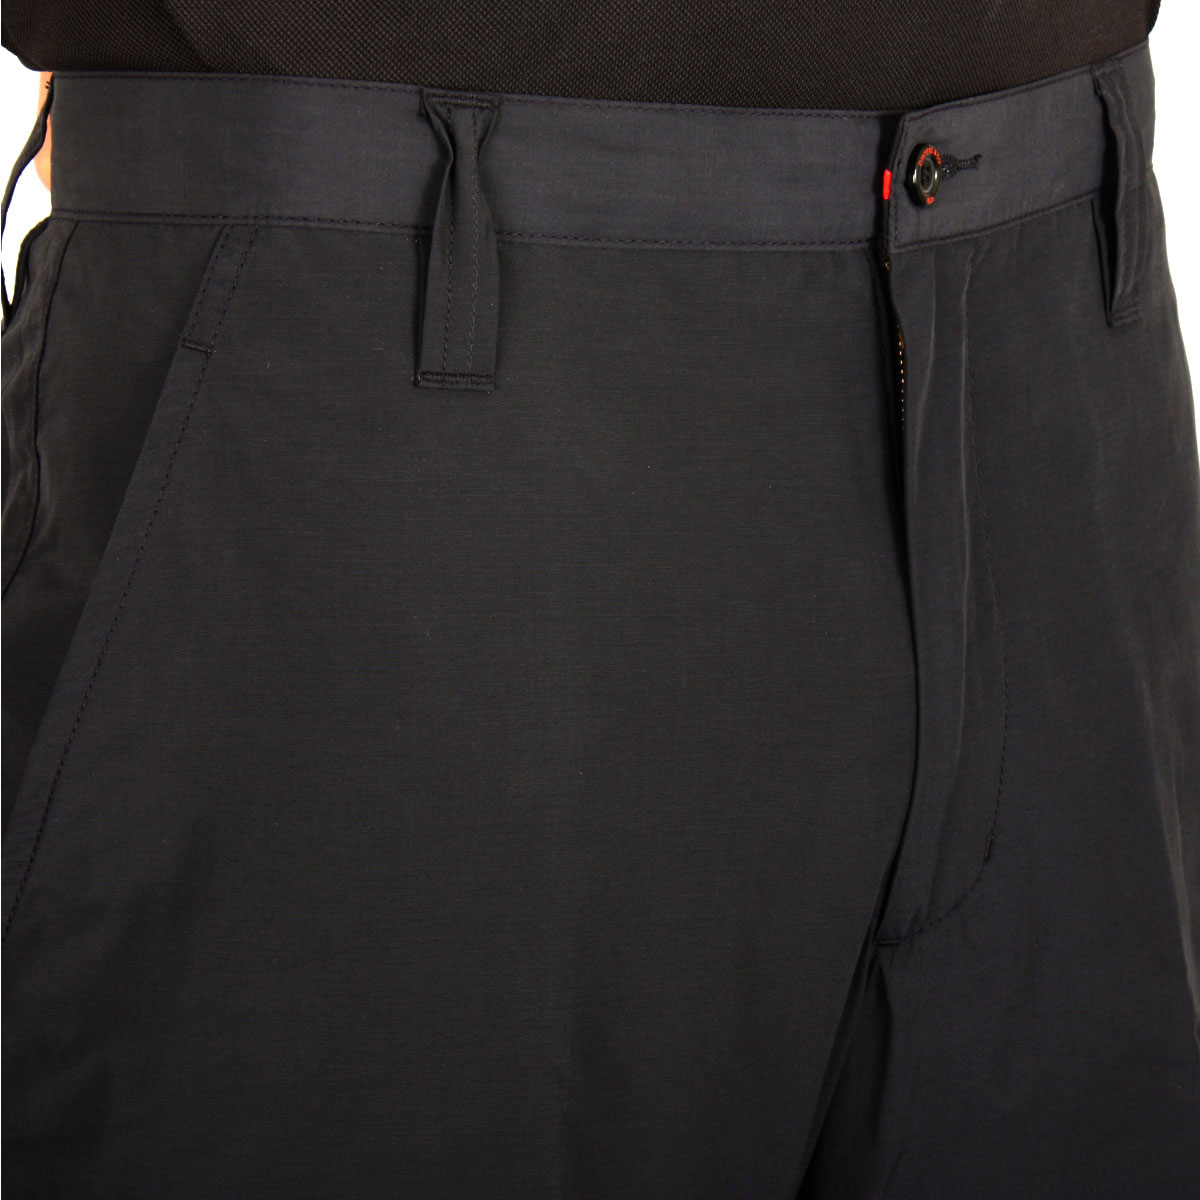 70% OFF RRP Dwyers & Co Mens Micro Tech Golf Trousers Water Resistant Pant